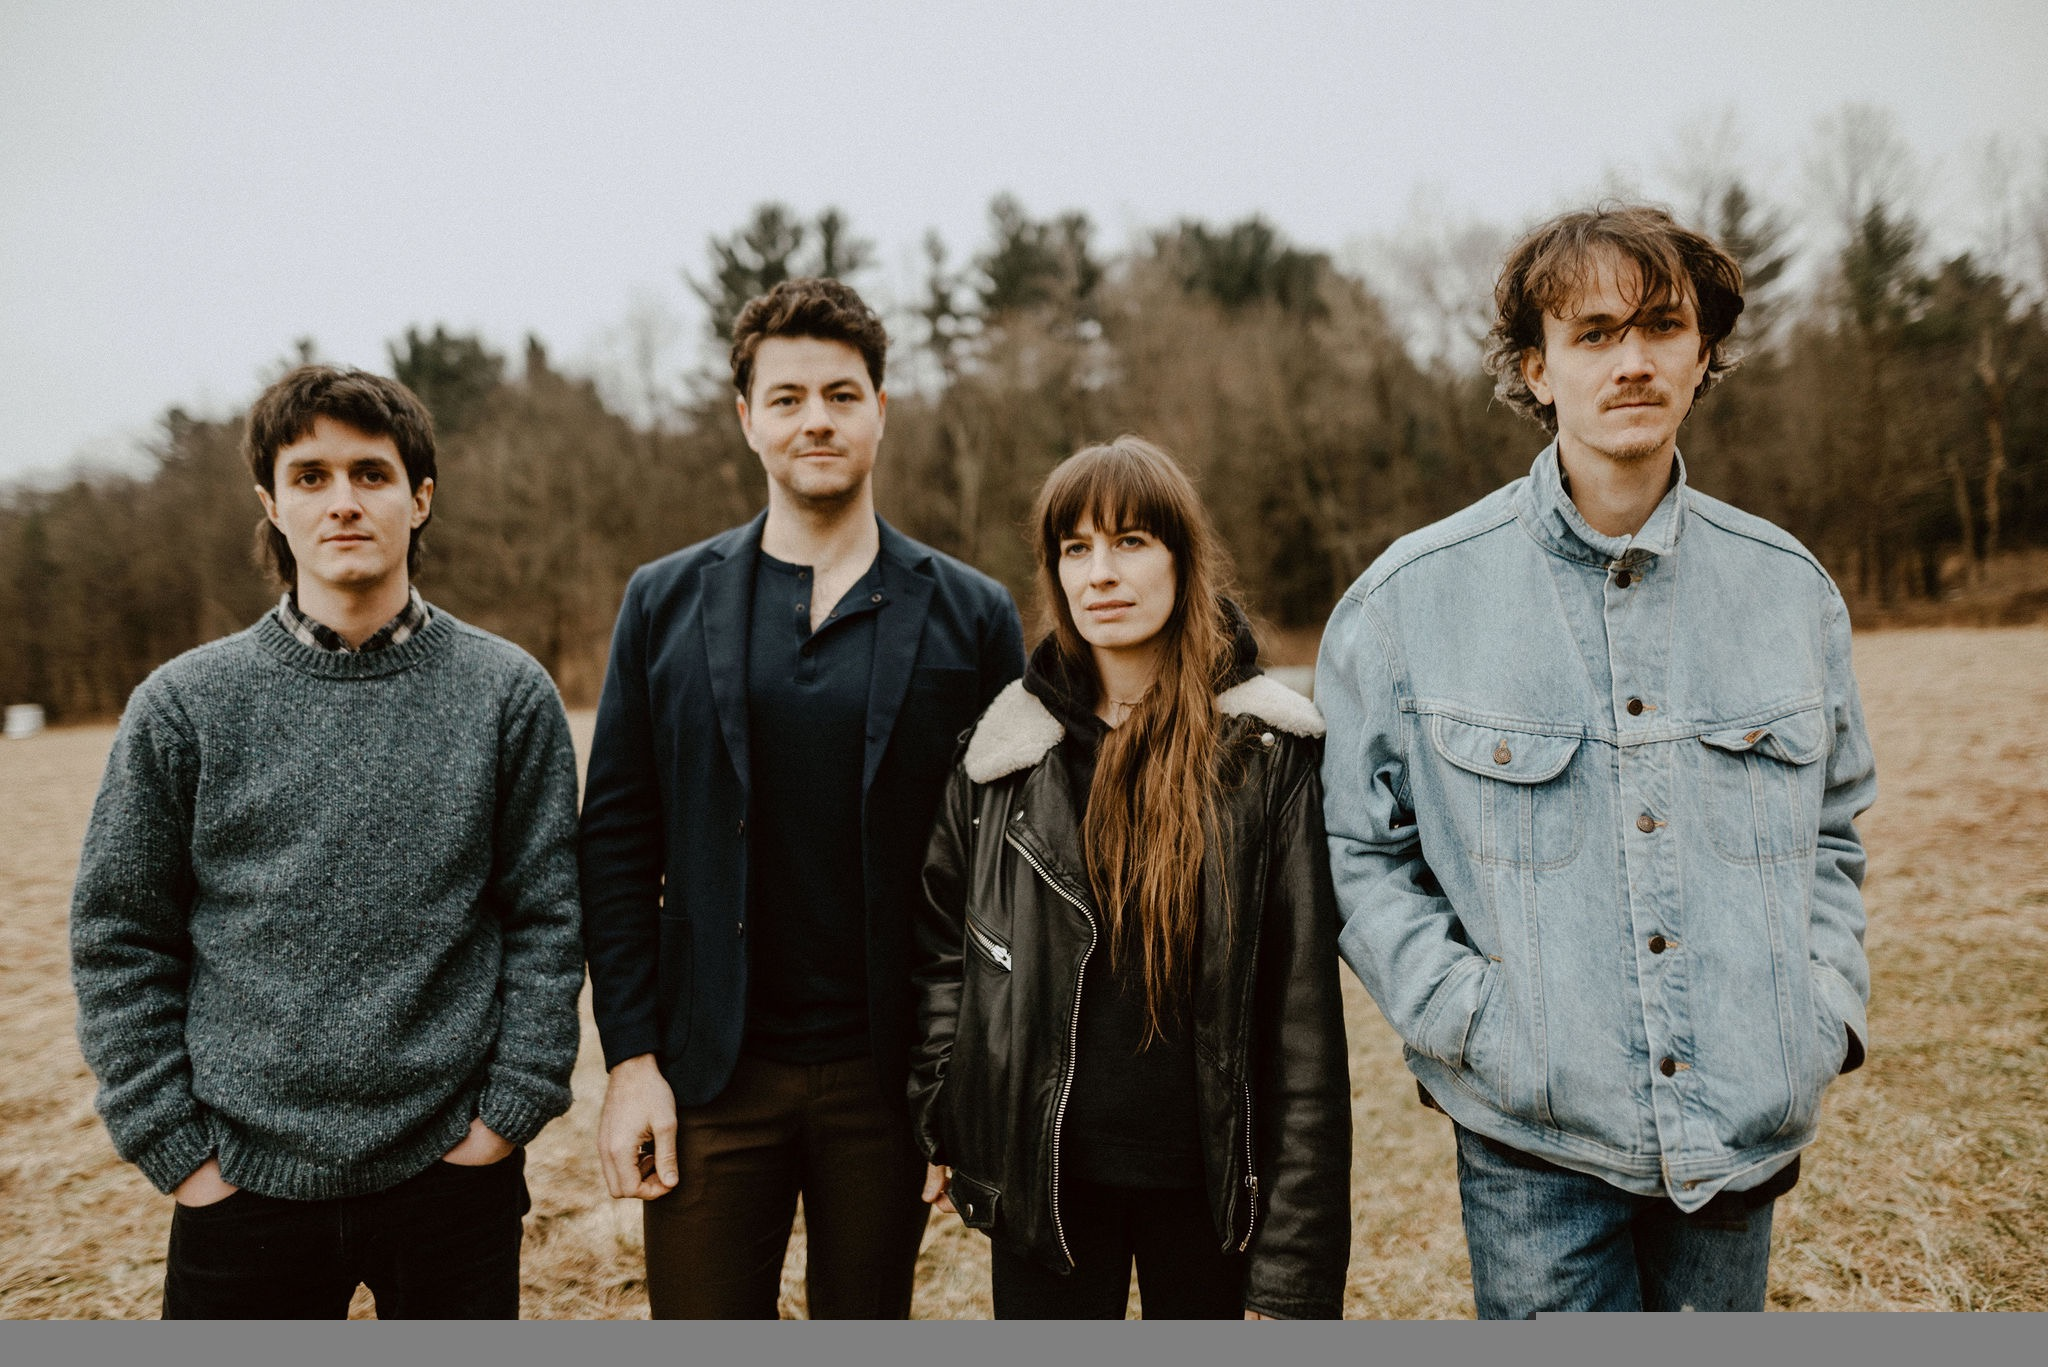 four people, three men and a woman, standing in a field. It's a band photo